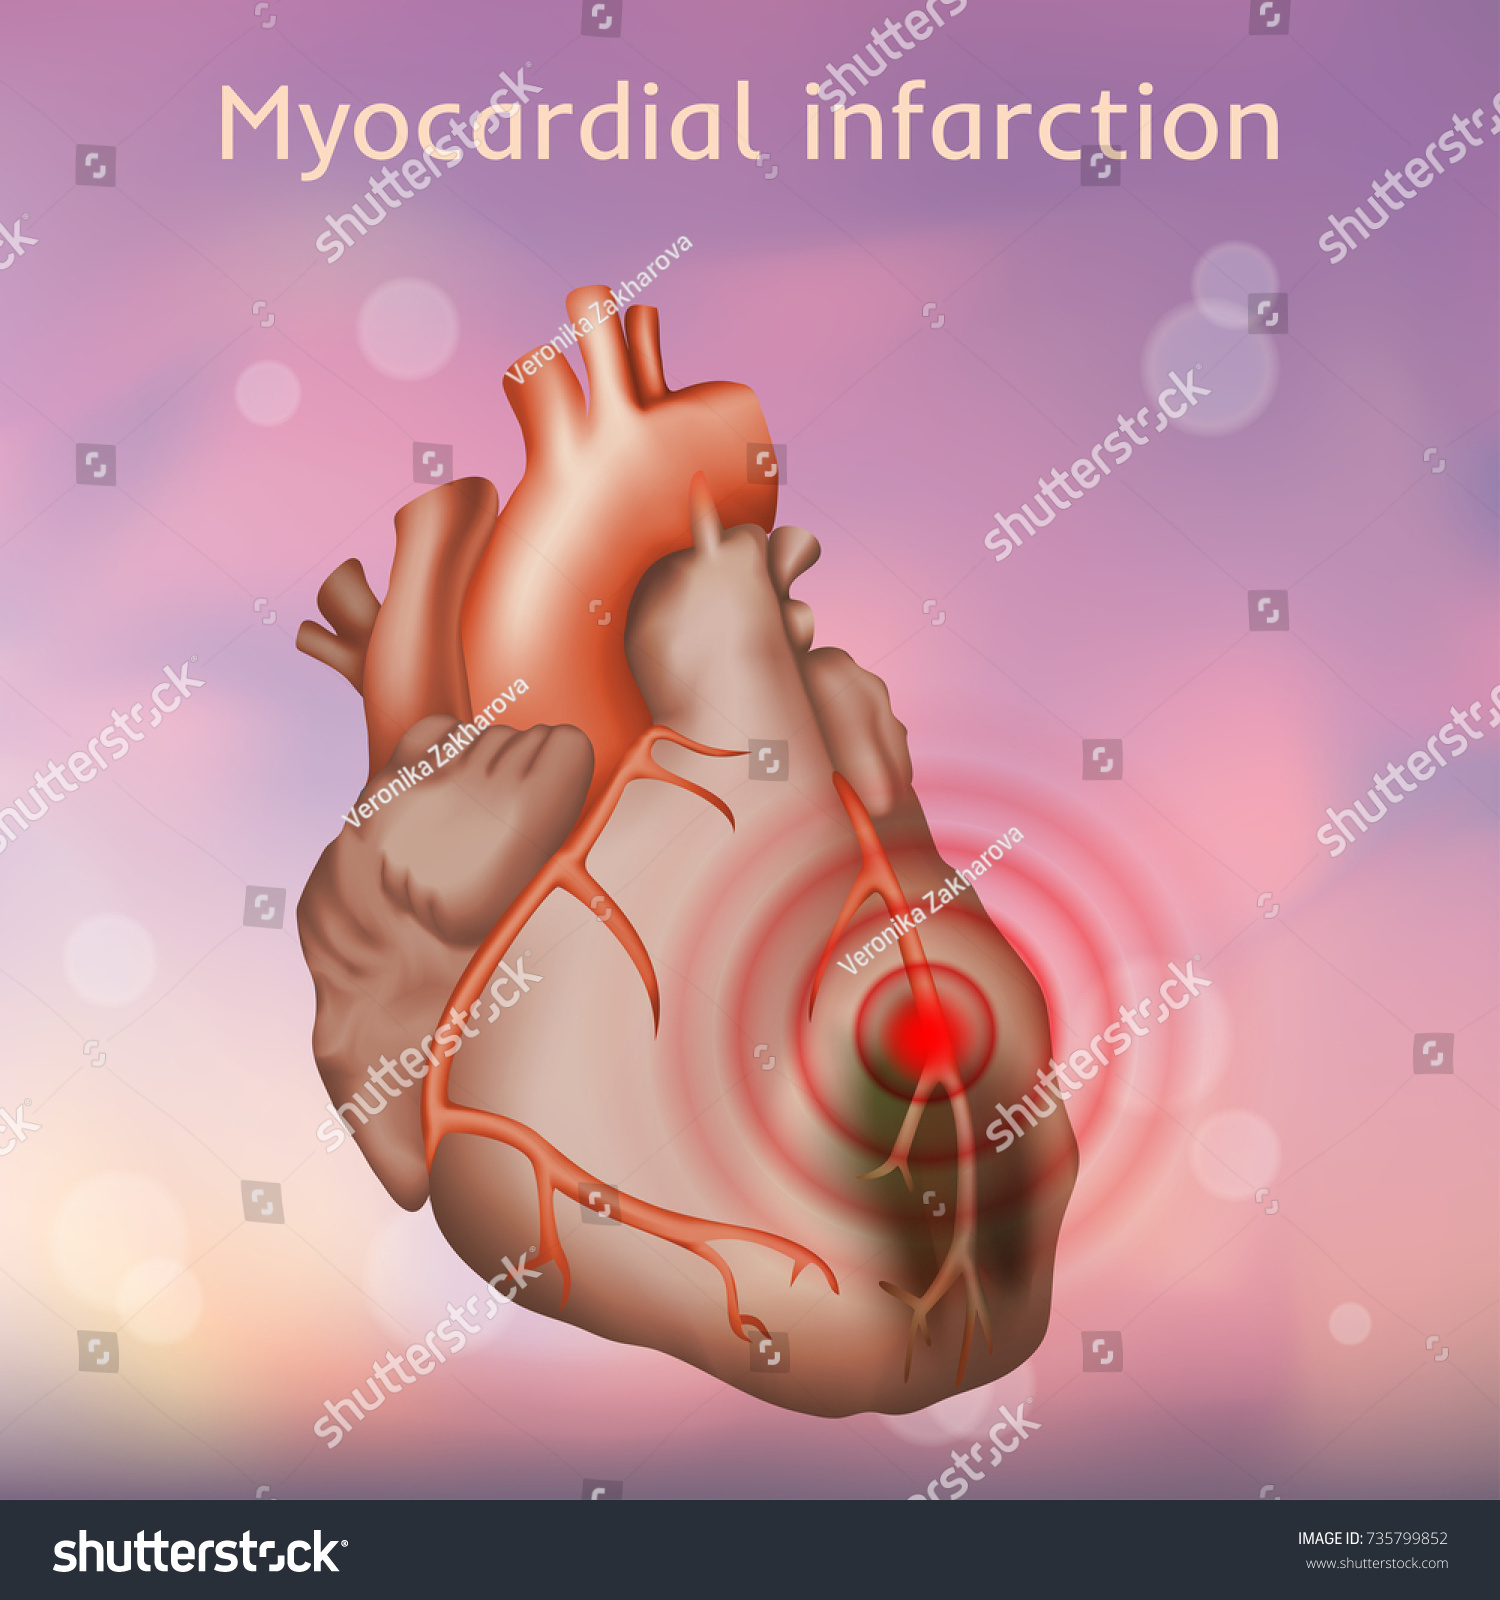 Myocardial Infarction Heart Attack Pain Damaged Stock Vector ...